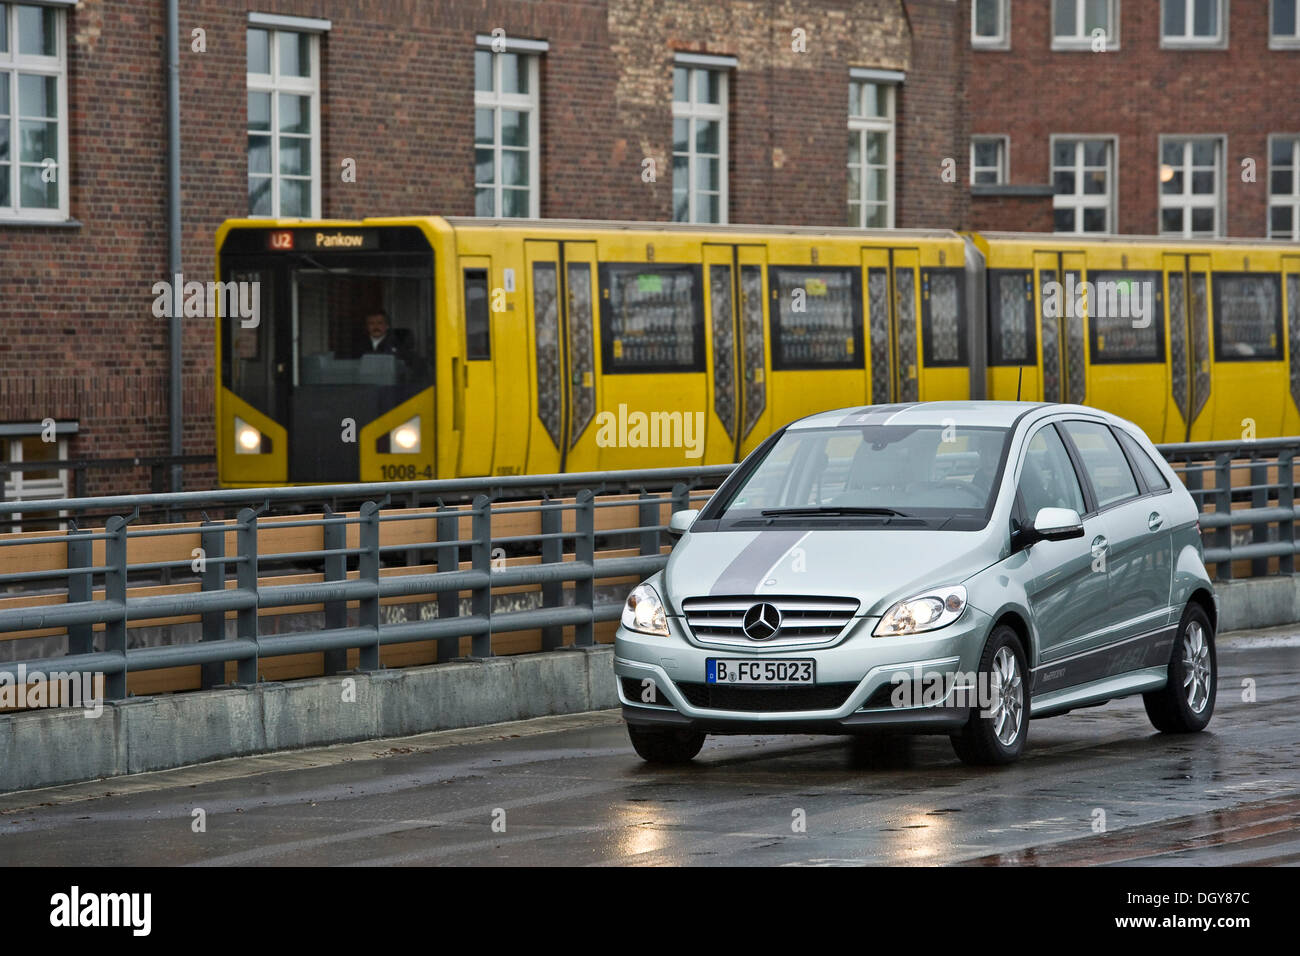 Hydrogen fuel cell vehicle, Mercedes B-class zero-emission, metro, Berlin - Stock Image